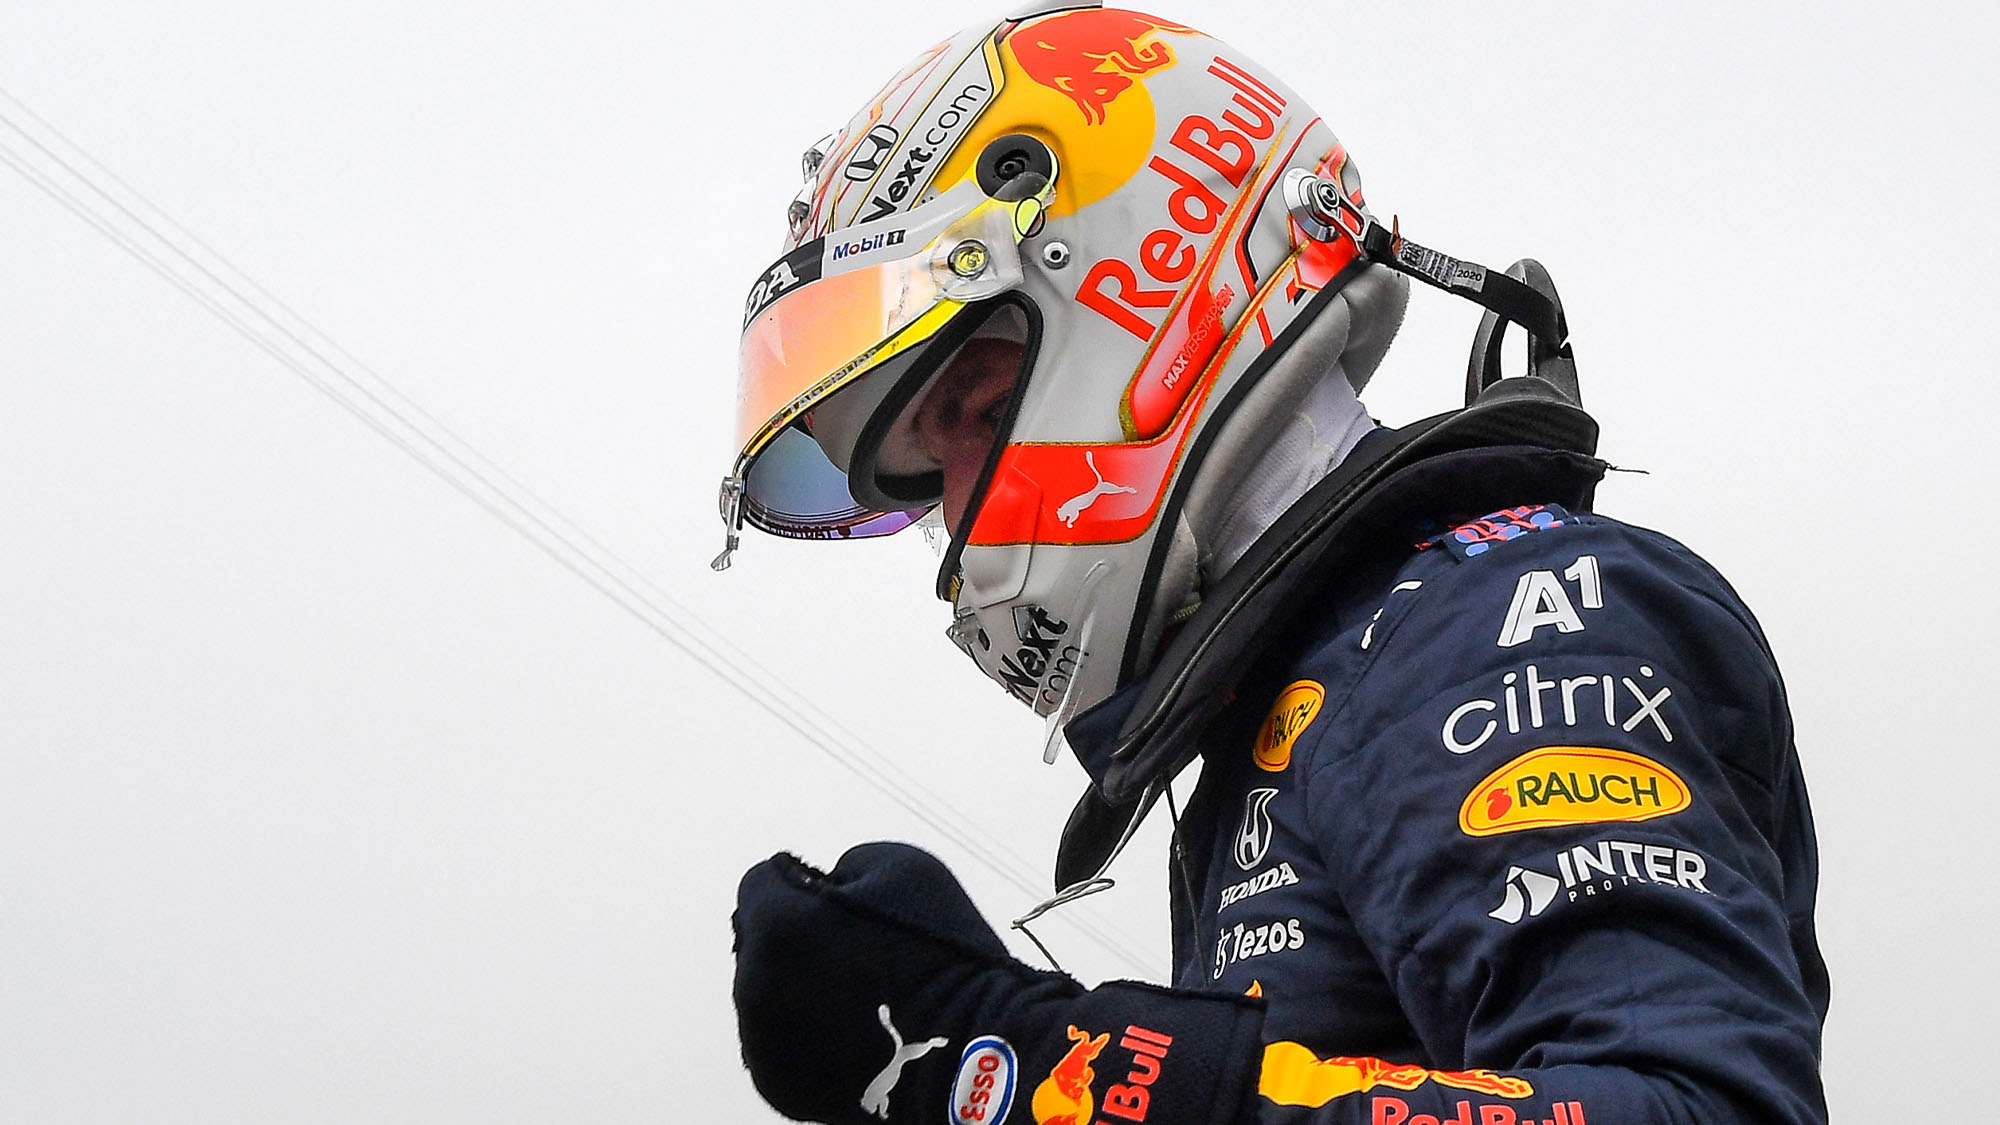 Red Bull's Dutch driver Max Verstappen celebrates in the parc ferme at the end of the qualifying sessions at the Circuit Paul-Ricard in Le Castellet, southern France, on June 19, 2021, ahead of the French Formula One Grand Prix. - Max Verstappen claimed pole on June 19, 2021, for the French Grand Prix with Lewis Hamilton's Mercedes alongside the Red Bull driver on the front row. (Photo by NICOLAS TUCAT / POOL / AFP) (Photo by NICOLAS TUCAT/POOL/AFP via Getty Images)